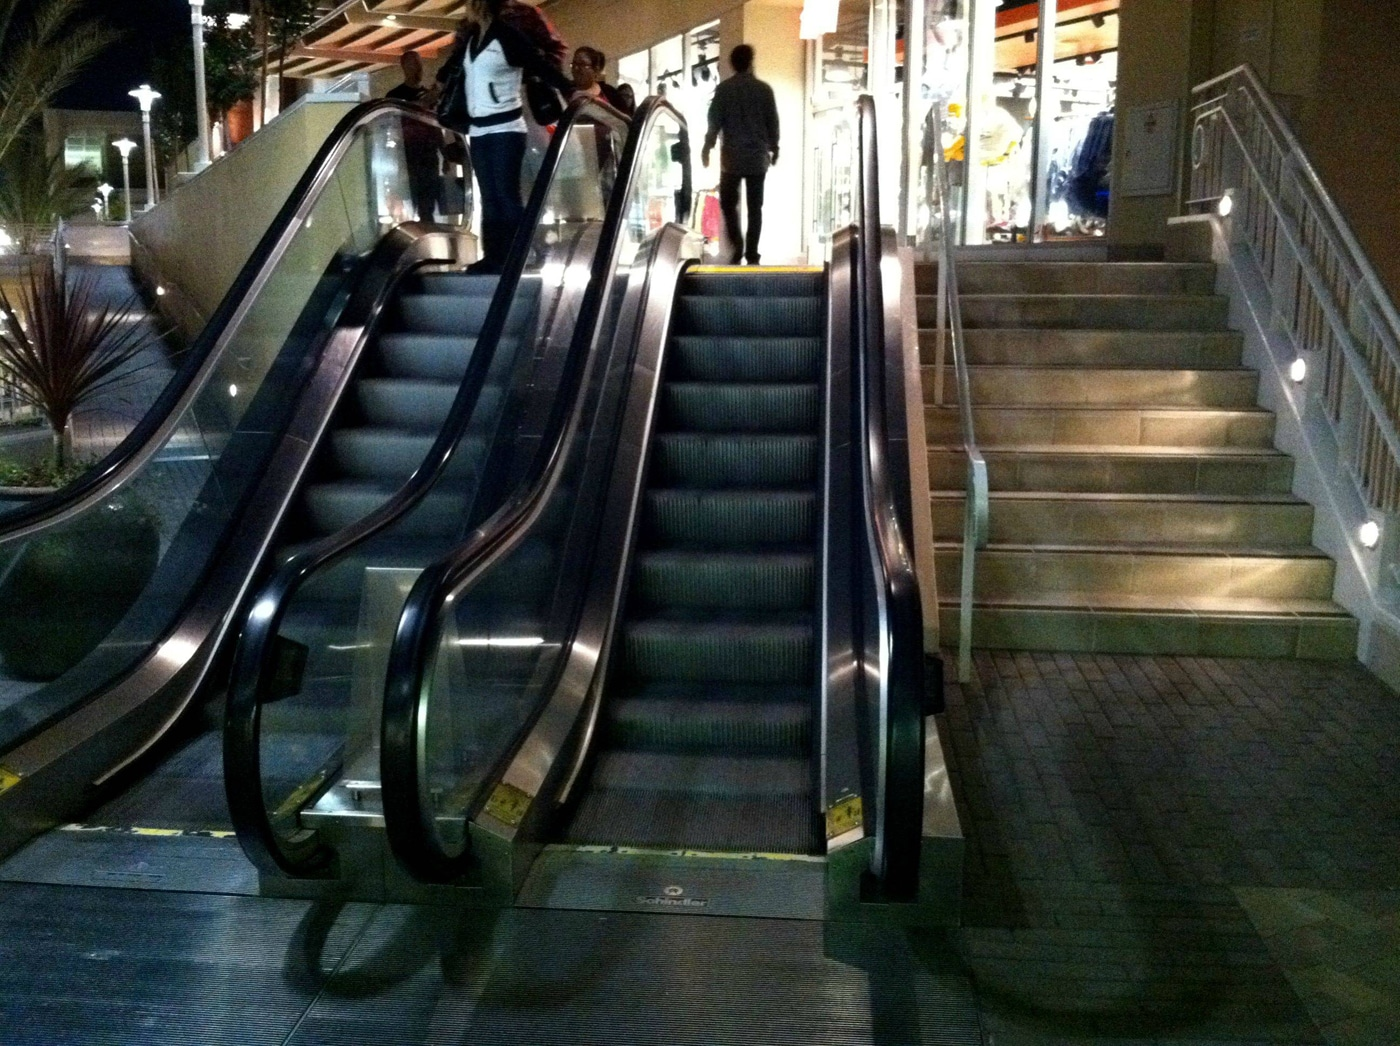 World's Shortest Escalator (Less Than 3 Feet) Is A Glorious Experience